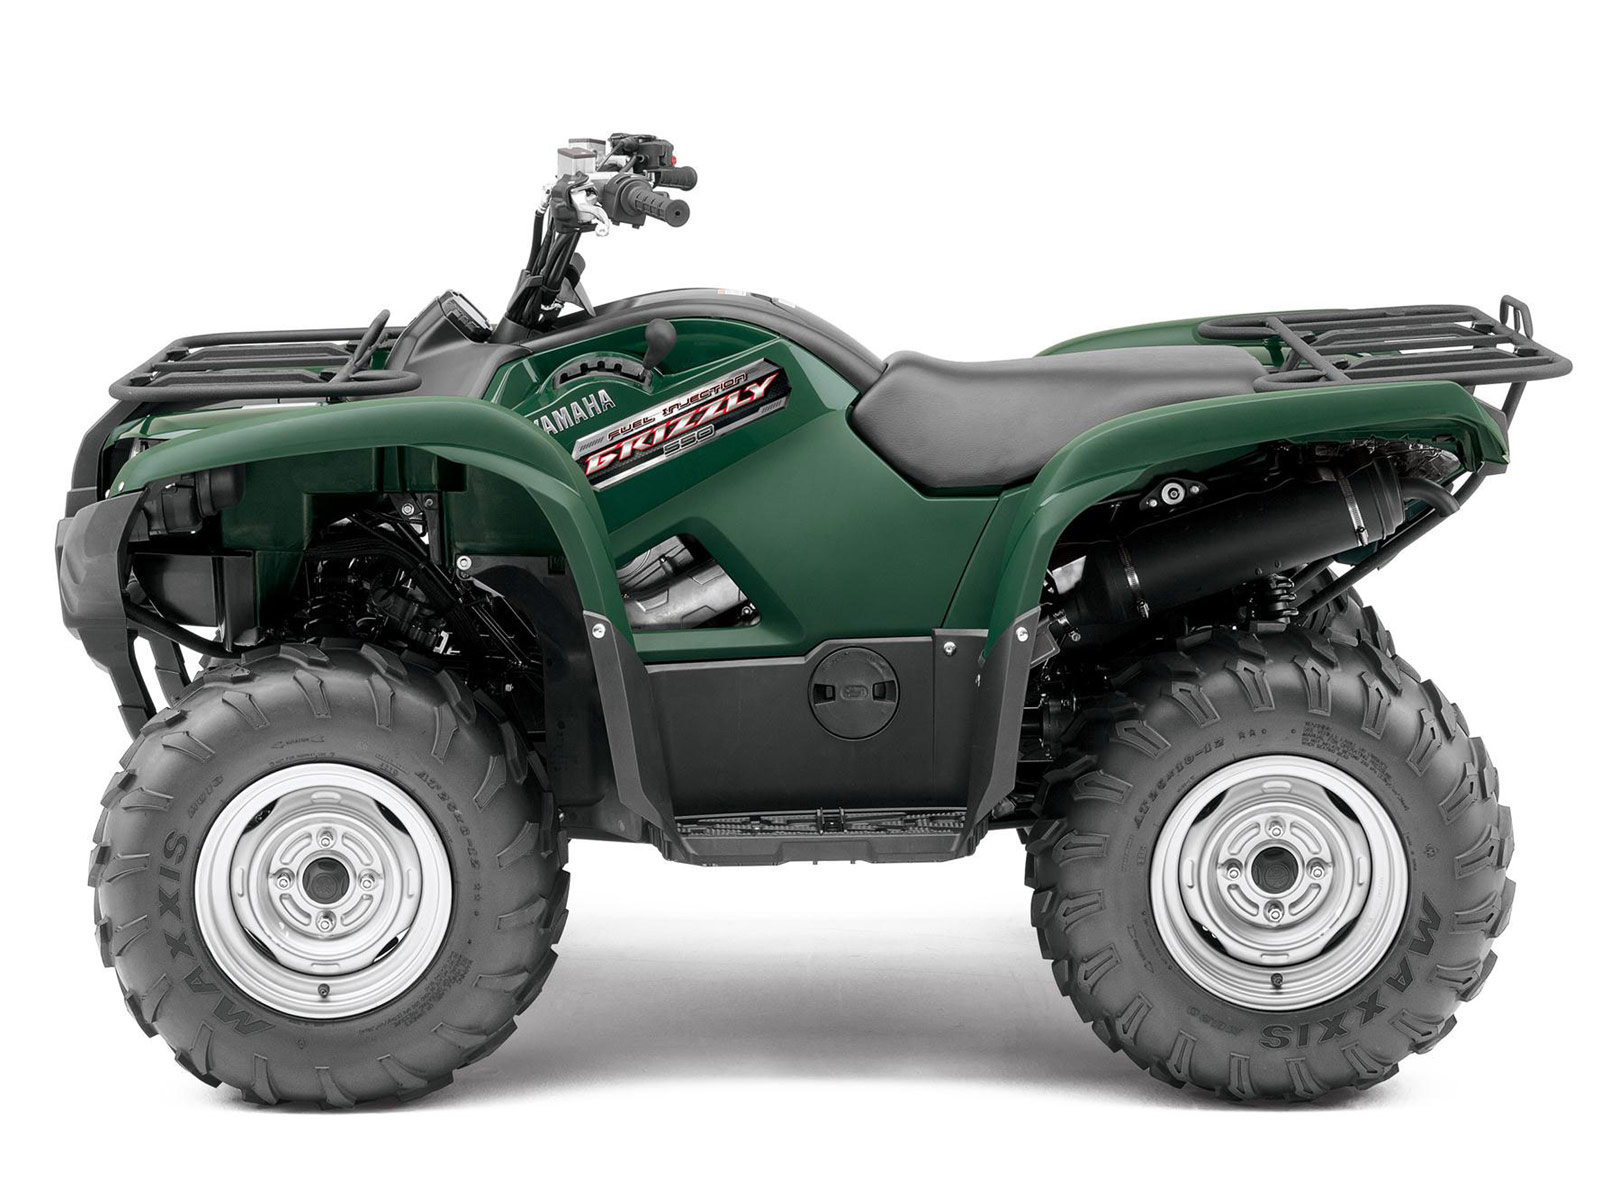 Yamaha Grizzly Prices